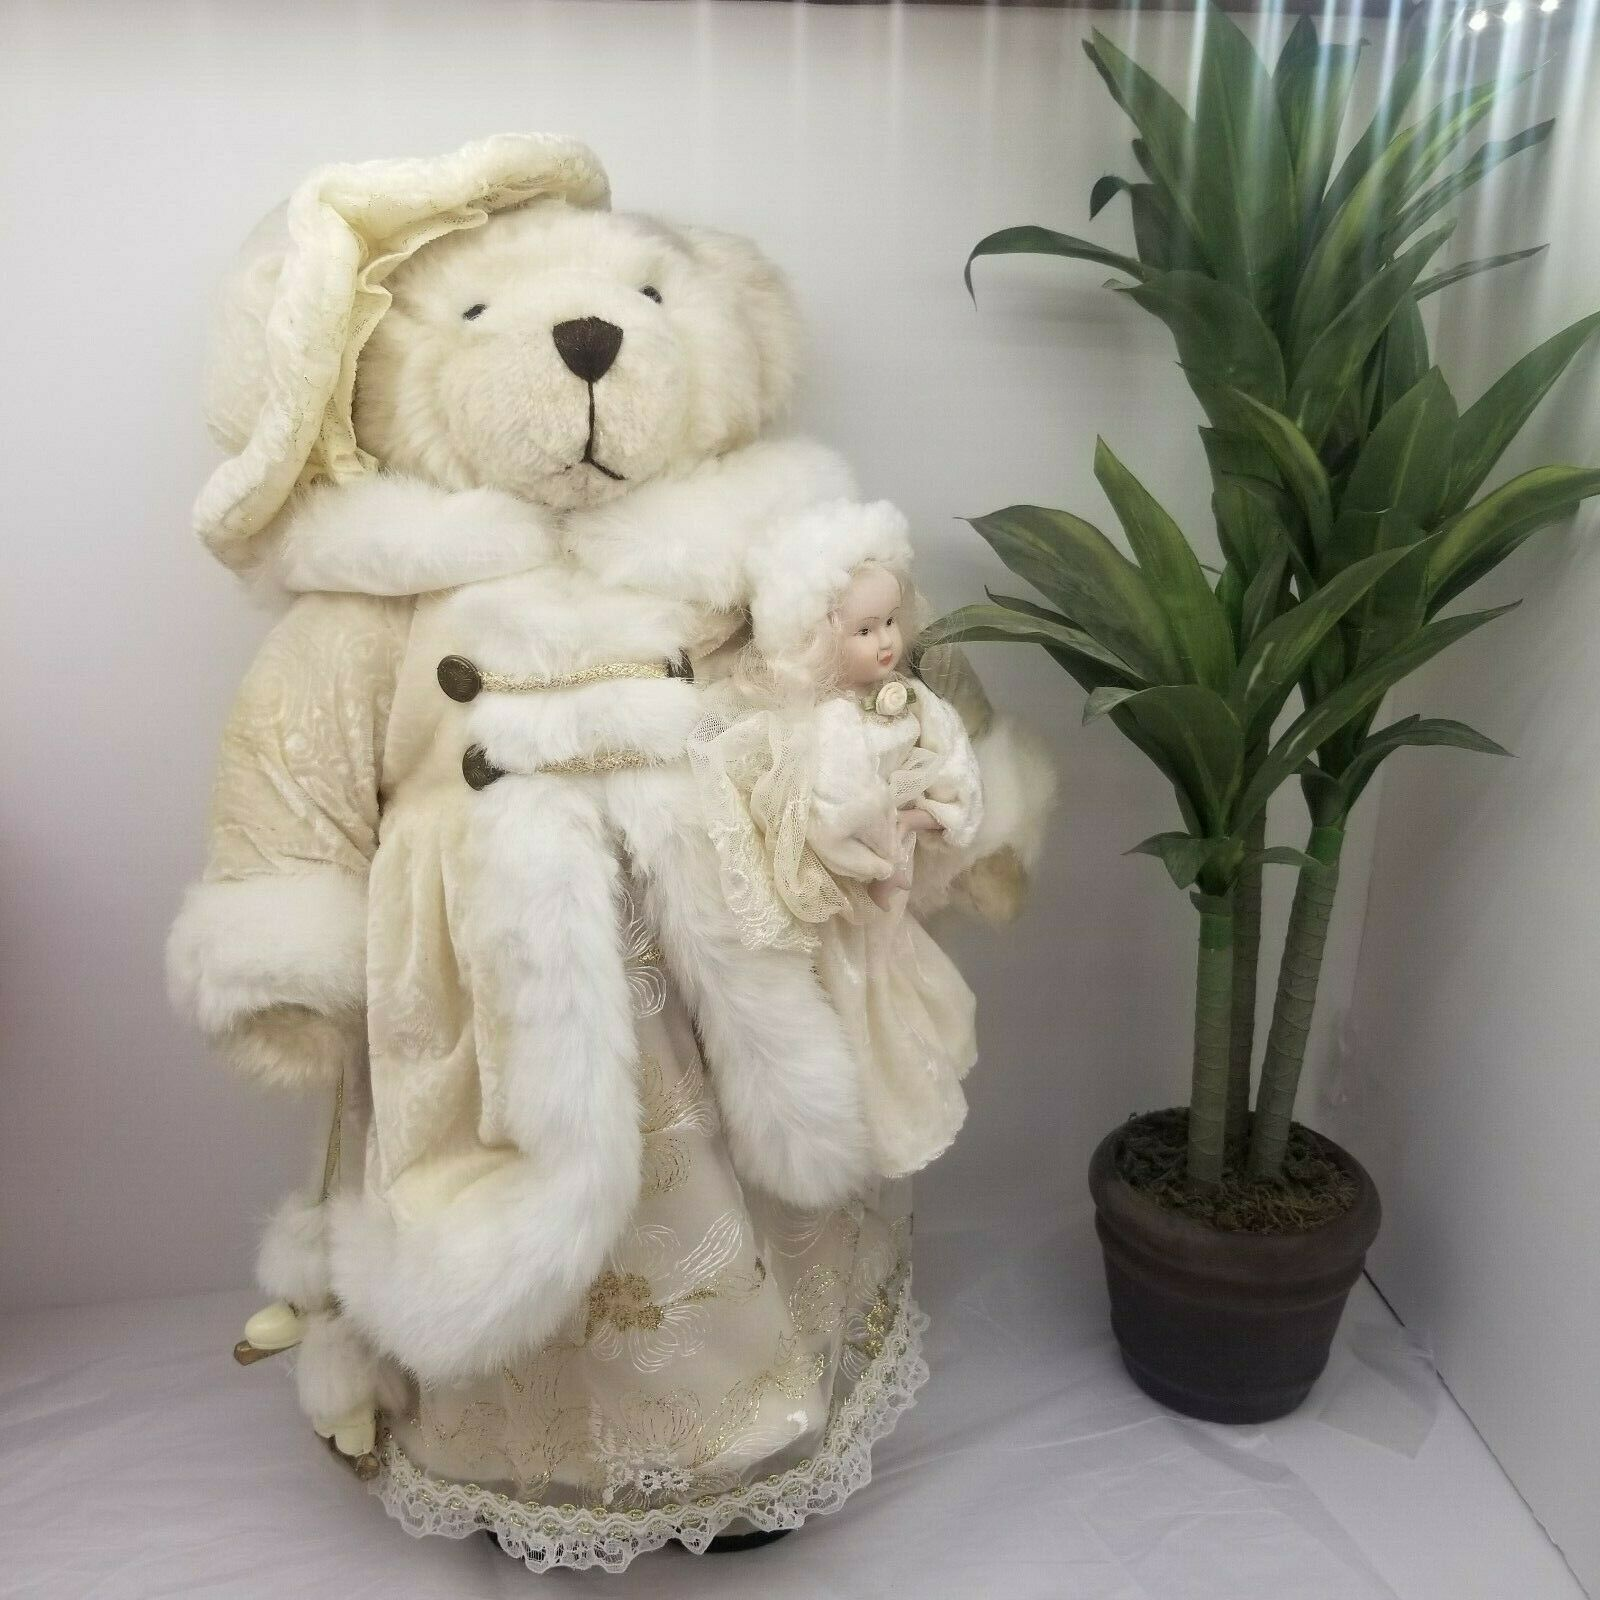 Creative Design Standing Teddy Bear Ivory Dress With Toy Doll And Wooden Skates  - $49.99